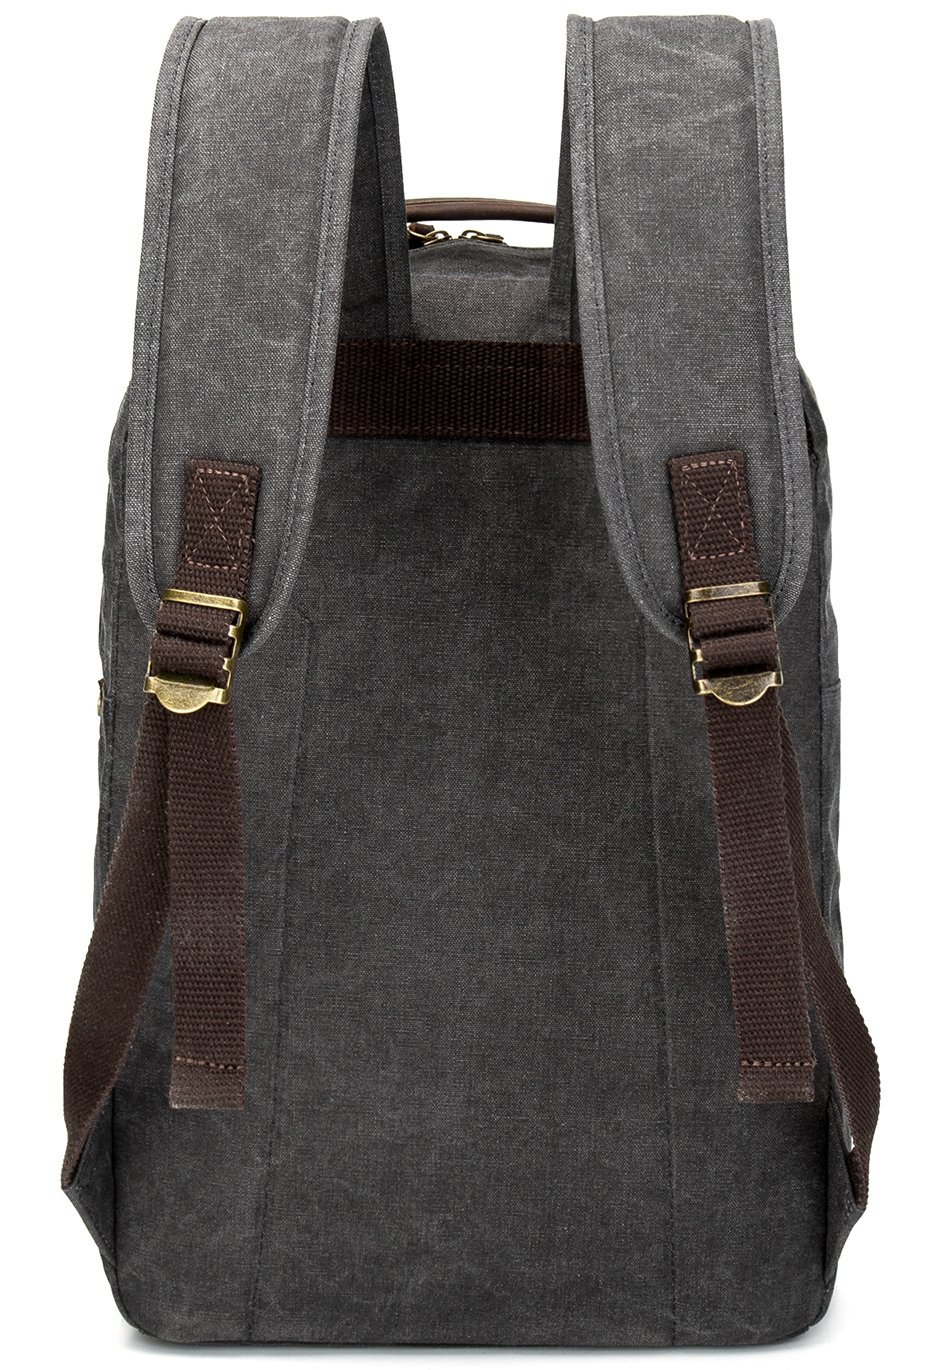 Vintave Waterproof Oil Waxed Canvas Genuine Crazy Horse Leather College Weekend Travel Laptops Backpack Fit to Laptop Up to 15.6 Inch By 1XD GEAR by 1XD GEAR (Image #6)